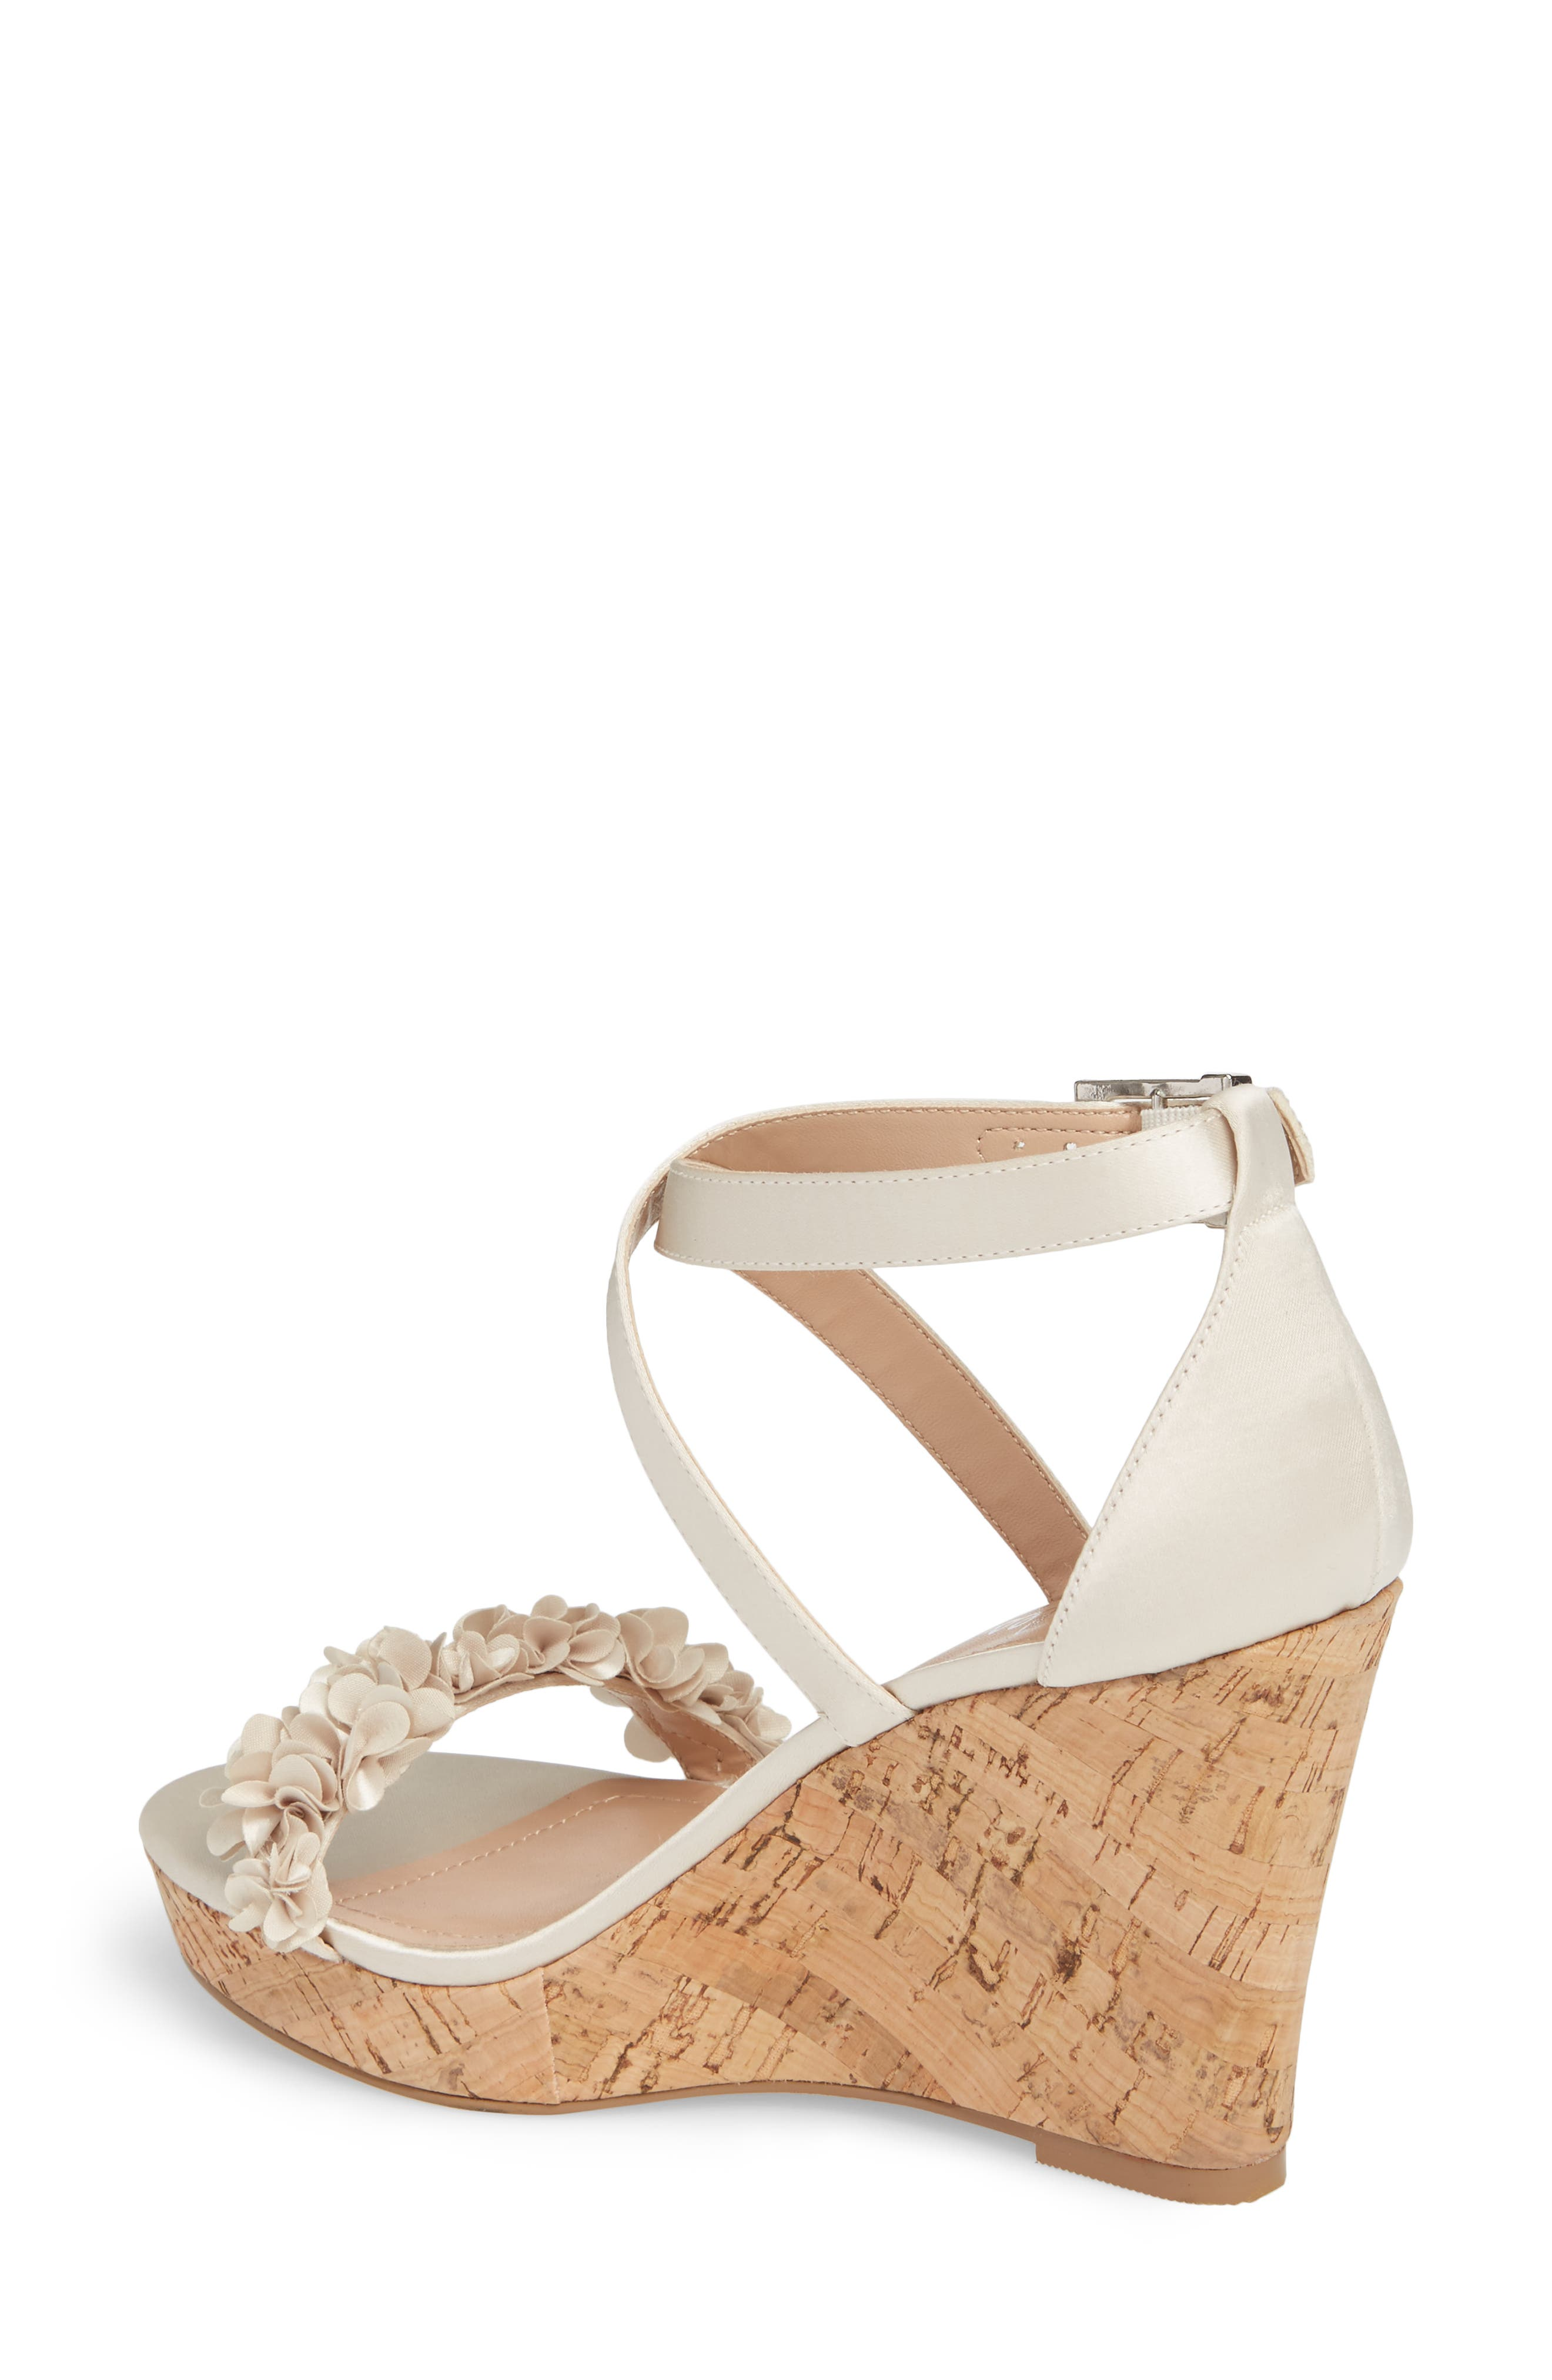 Lauryn Wedge Sandal,                             Alternate thumbnail 2, color,                             Ivory Satin